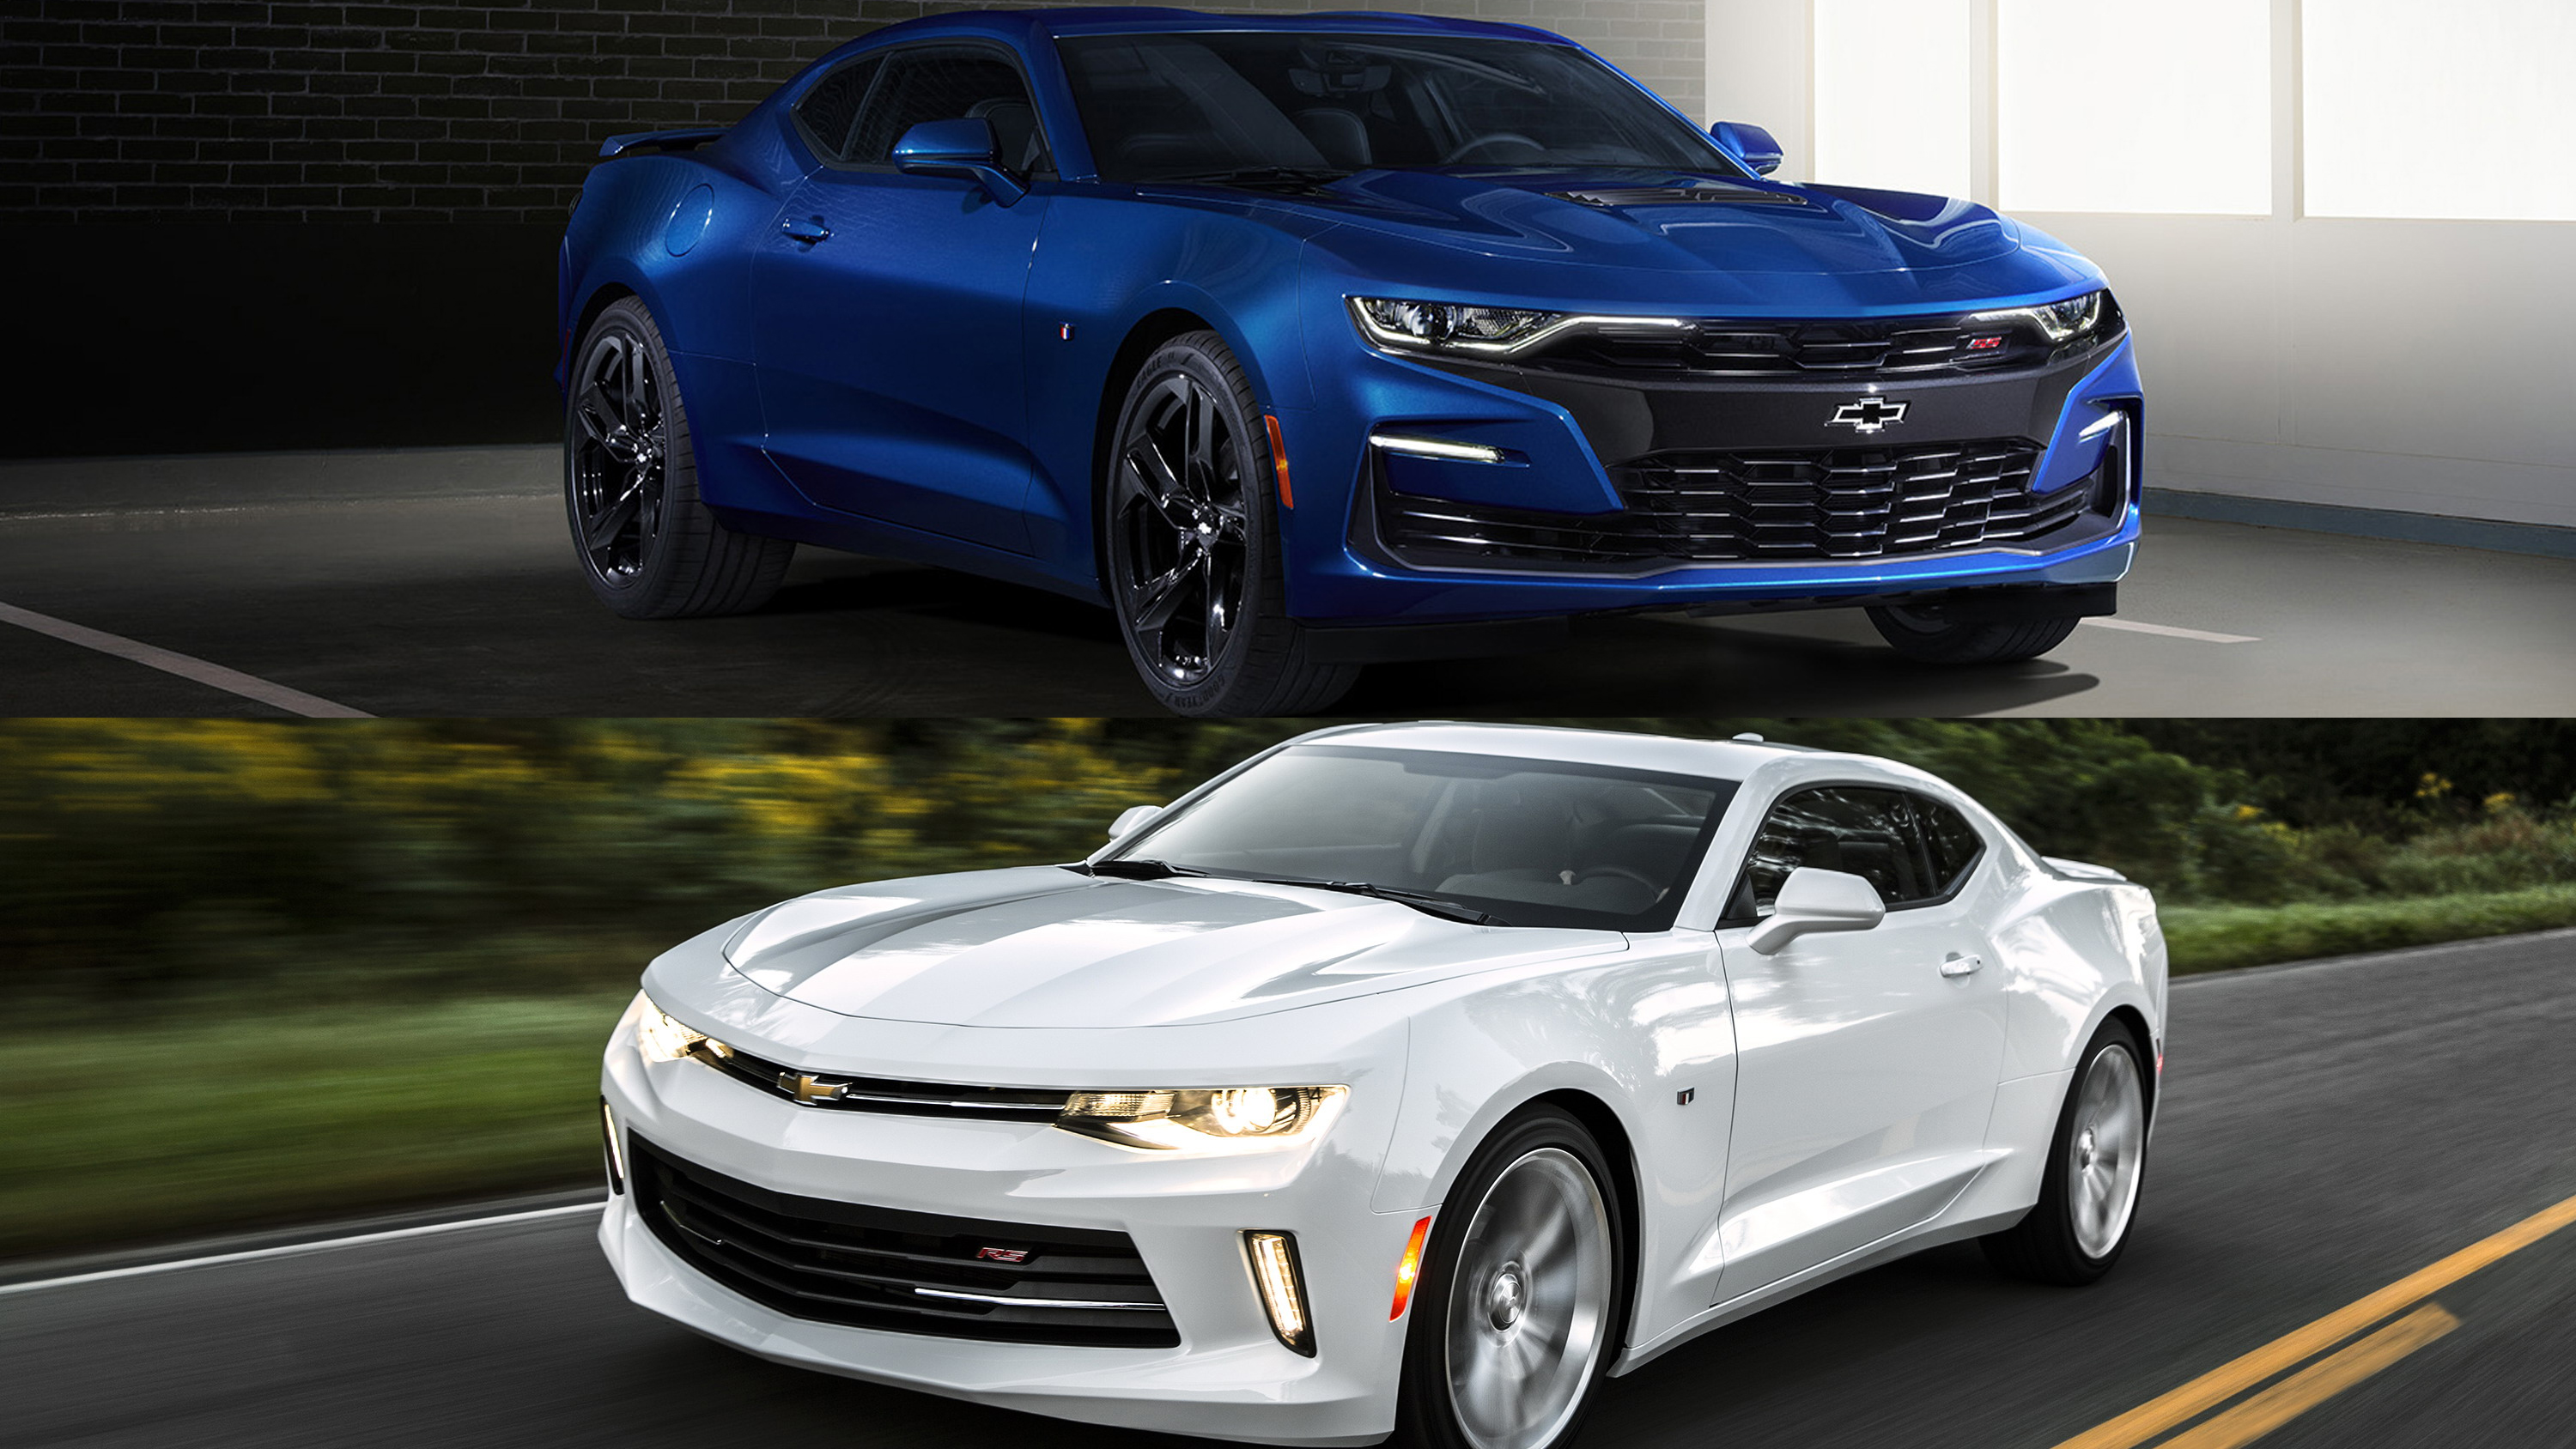 Hellcat 2018 Chevy Camaro >> Visual Comparison: 2018 Chevy Camaro Vs 2019 Chevy Camaro | Top Speed